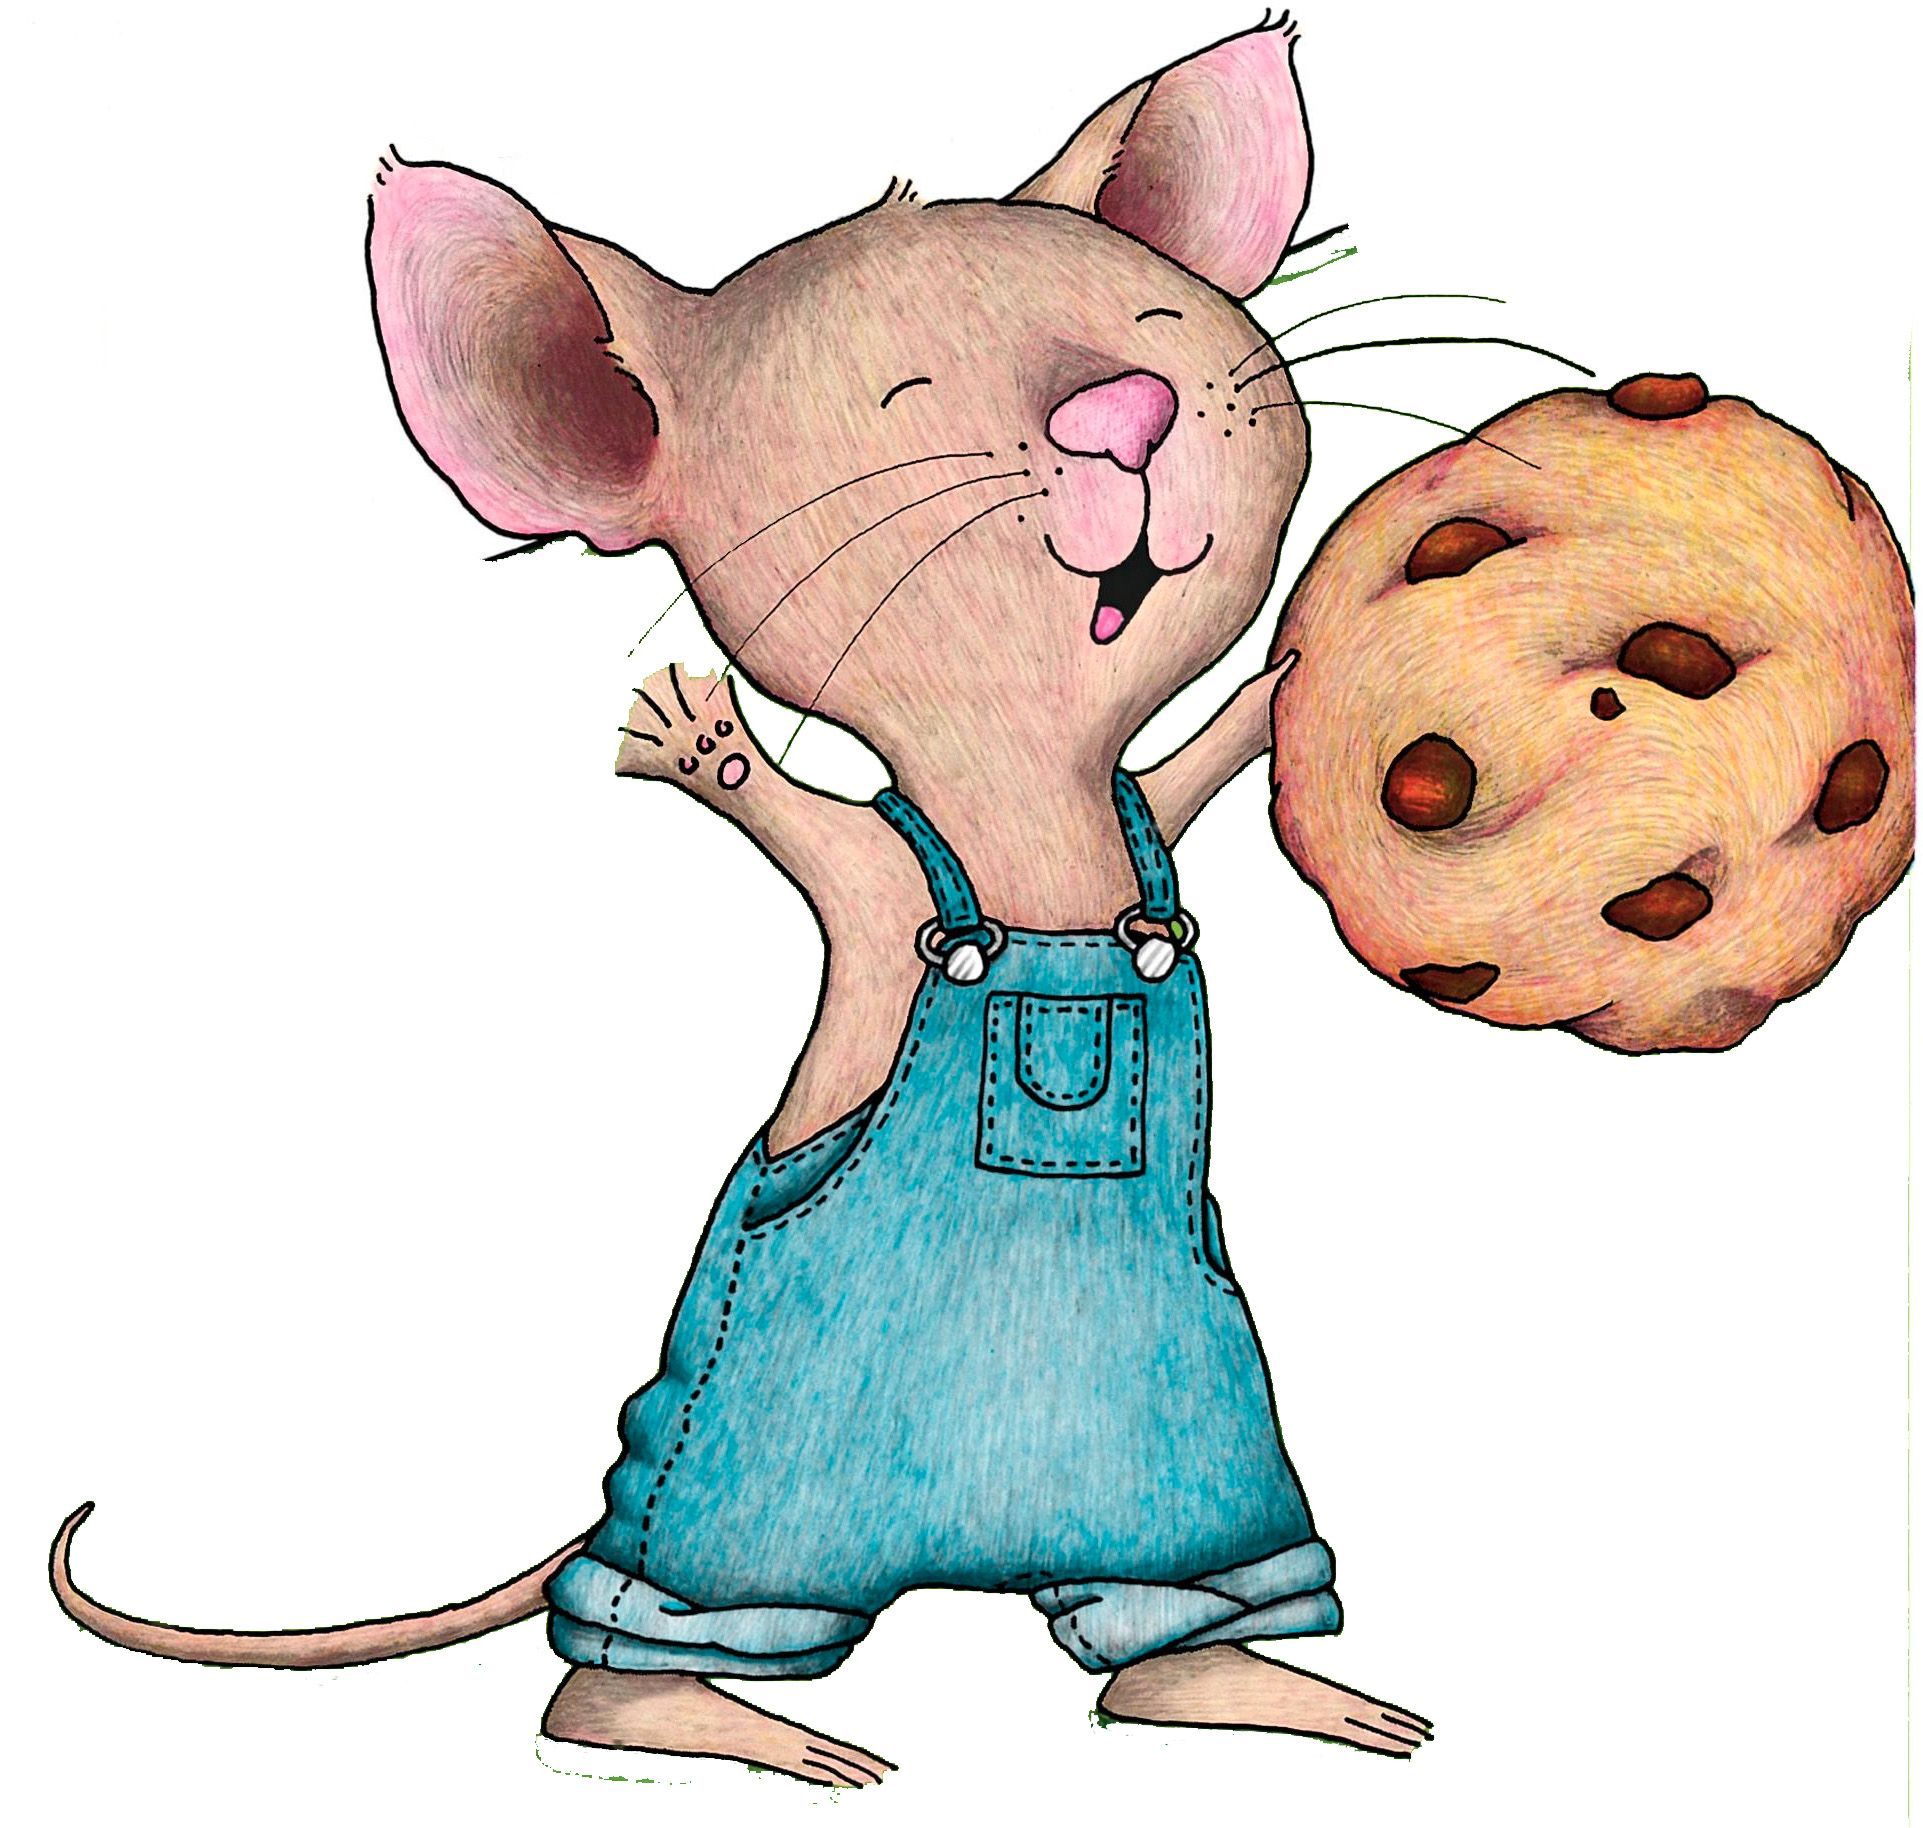 If you give a mouse a cookie.